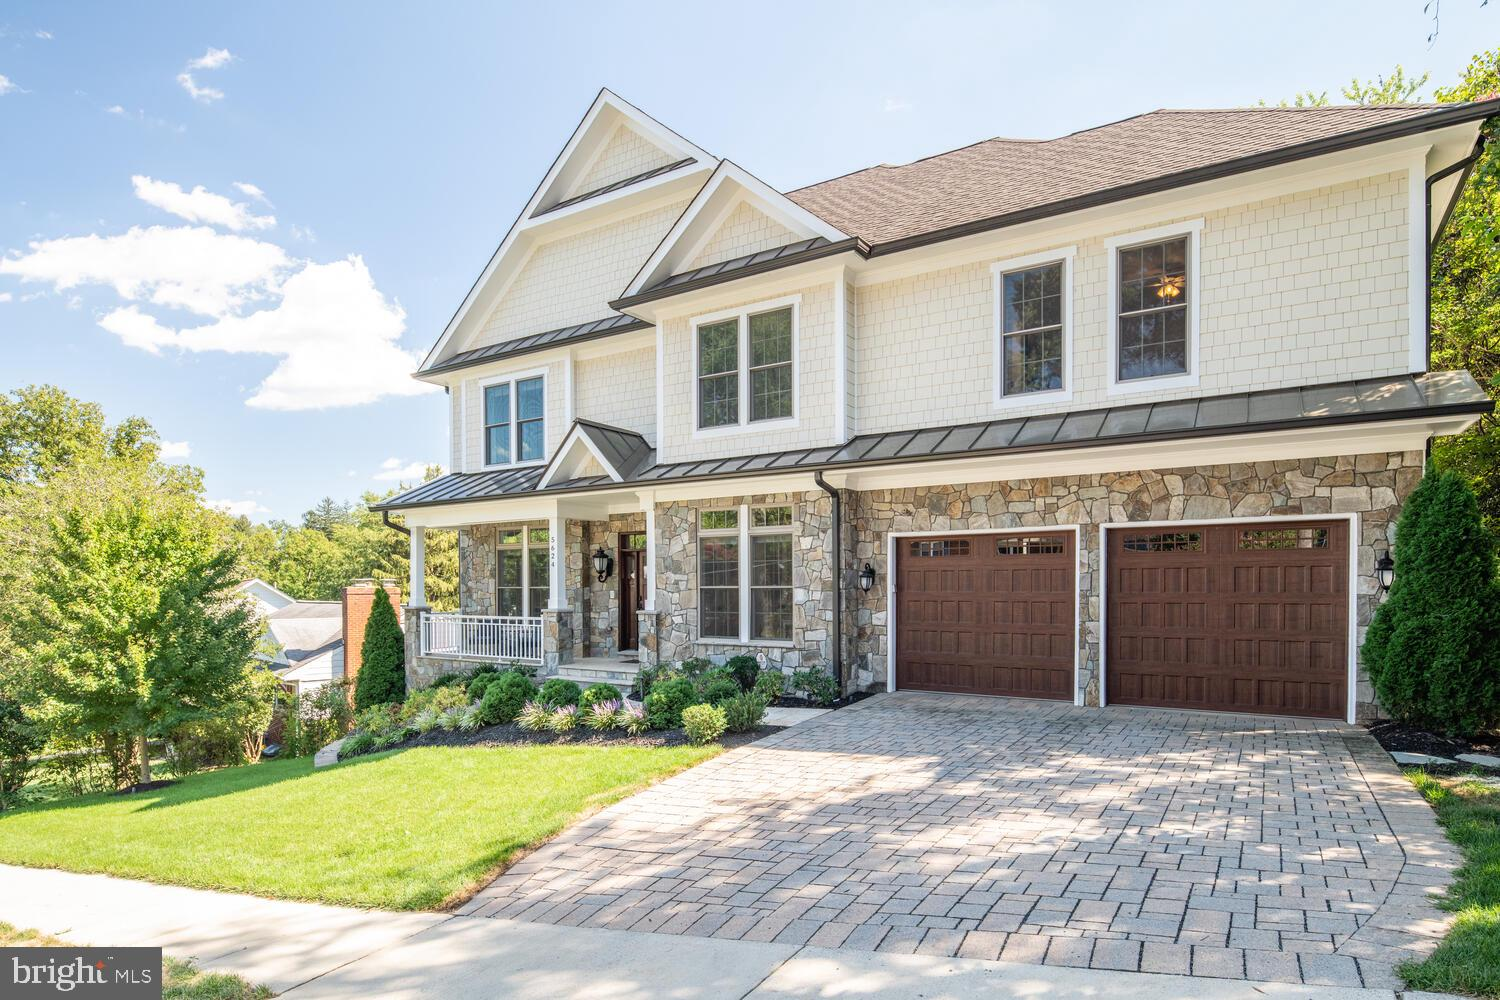 This gorgeous, updated craftsman style home built by DS Custom Homes effortlessly brings together mo